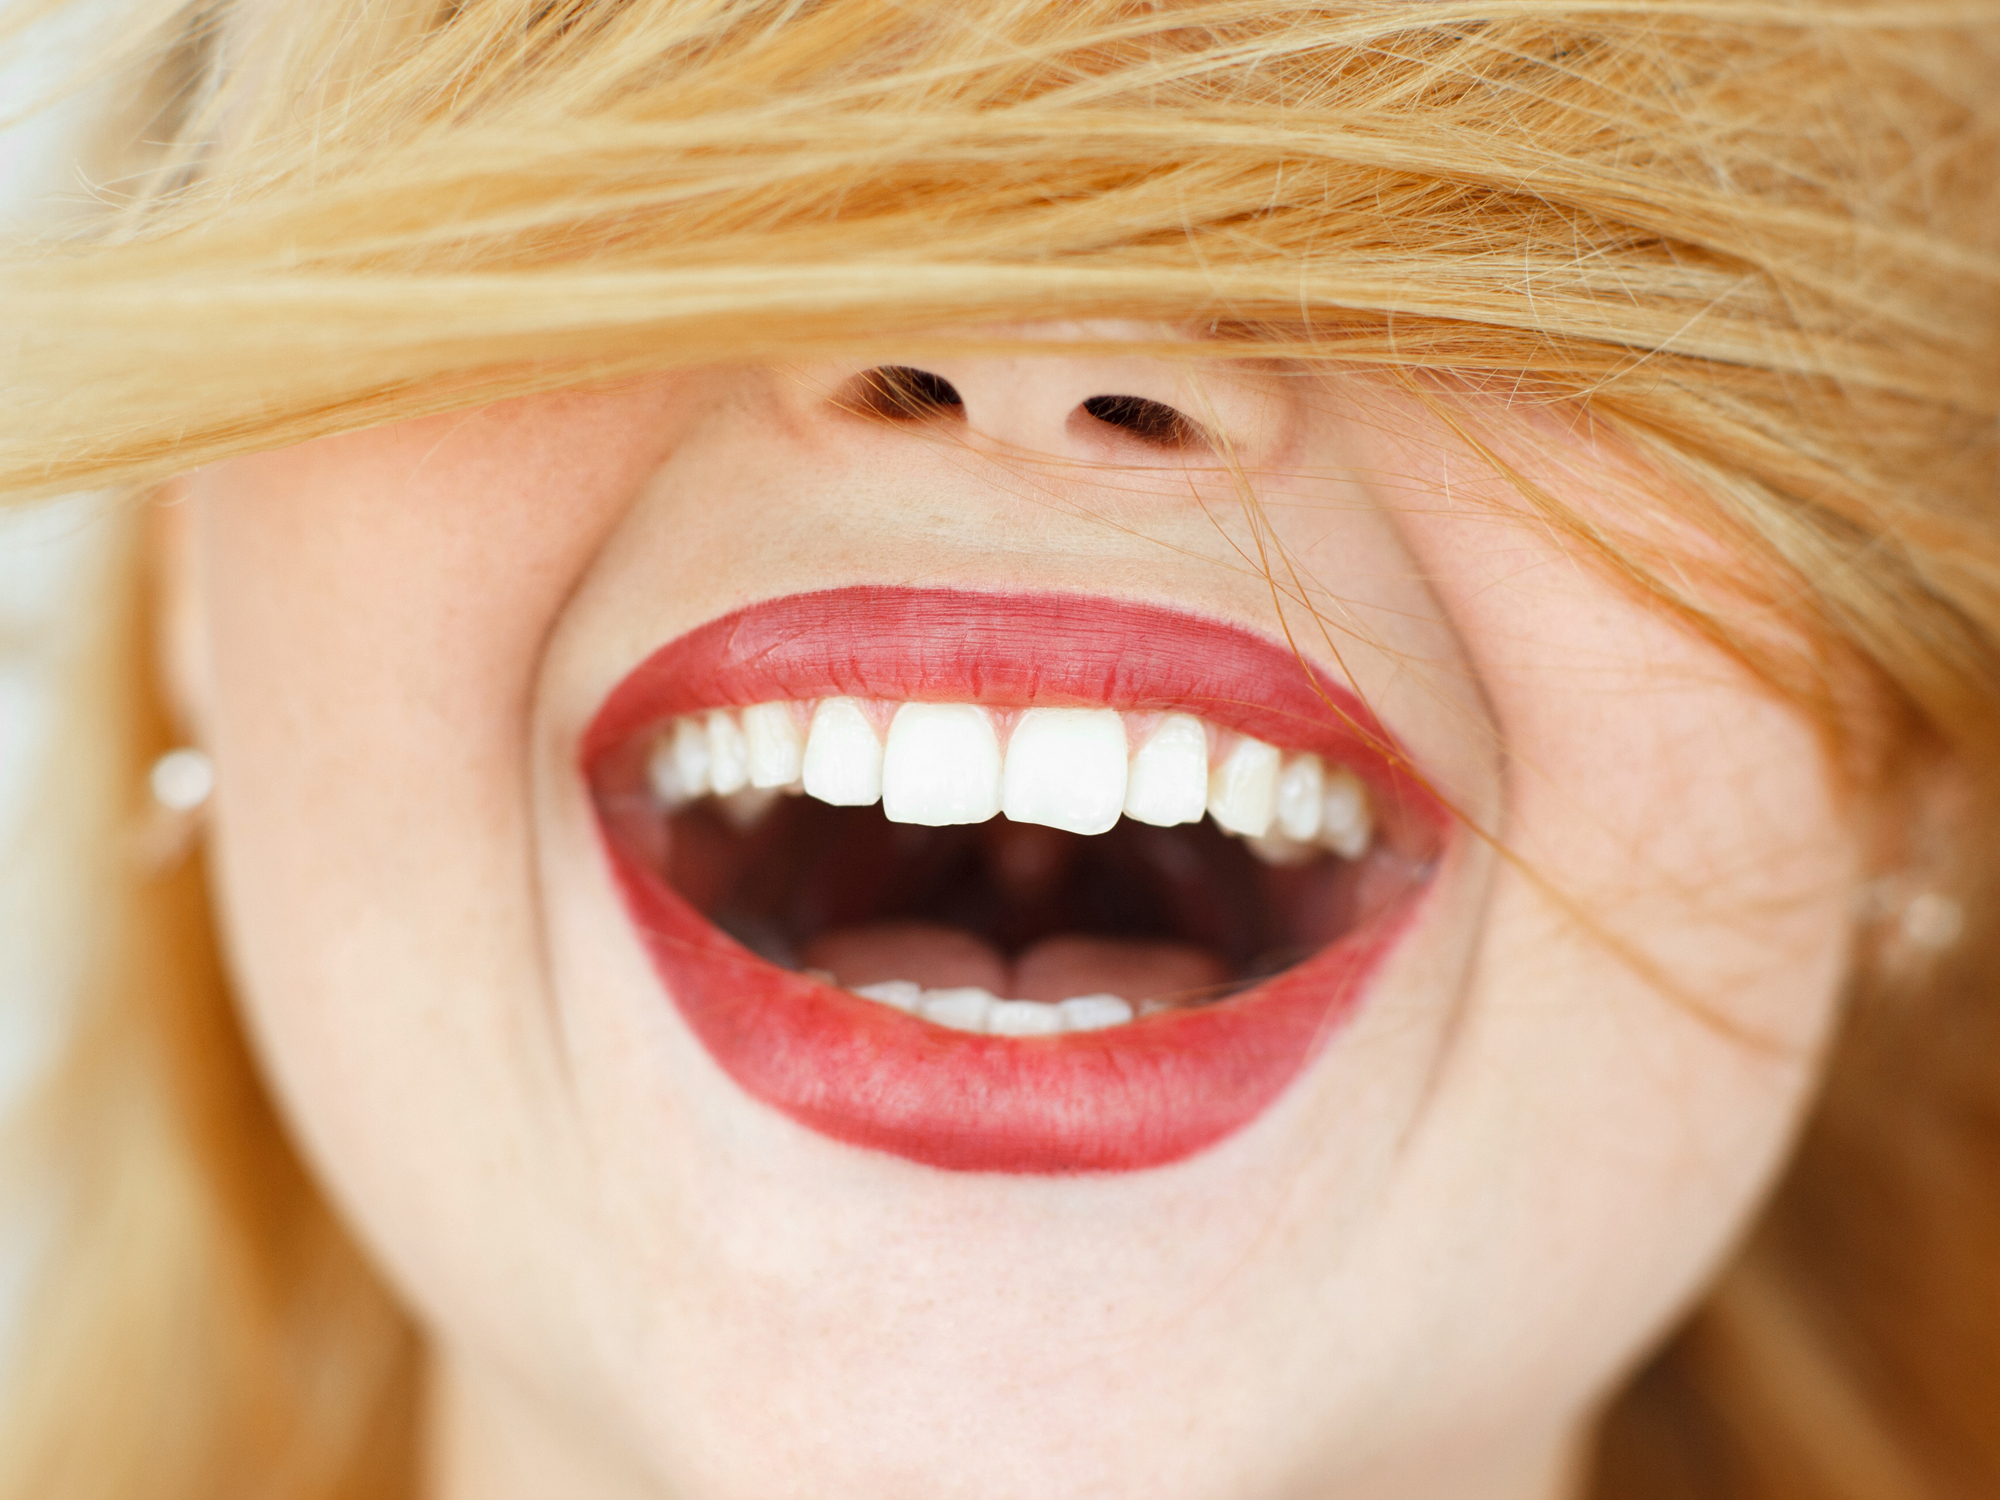 Get a younger, brighter smile without damaging your teeth